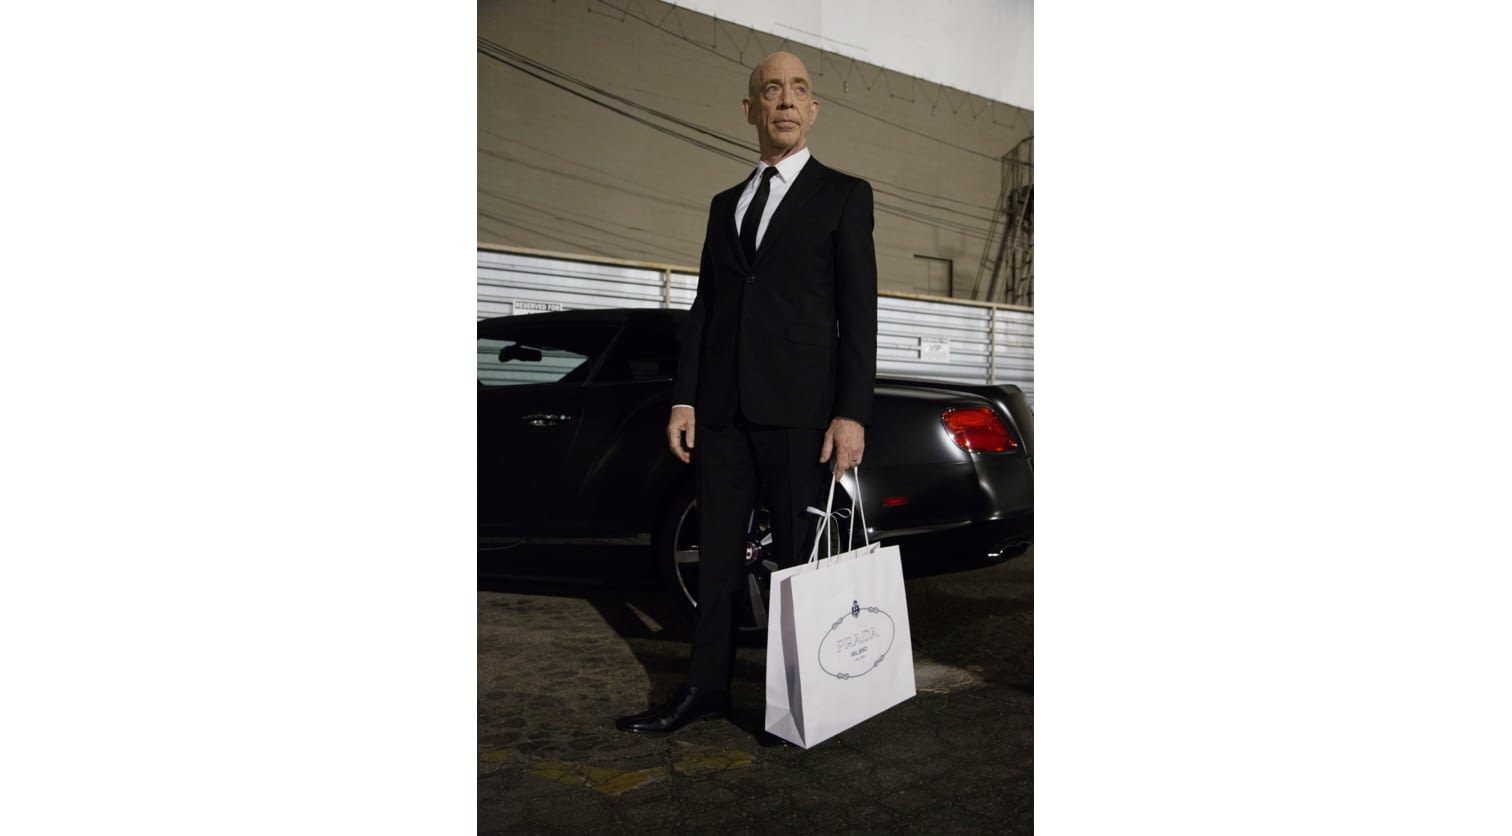 1 Prada_The Delivery Man_Episode 1_JK Simmons.jpg